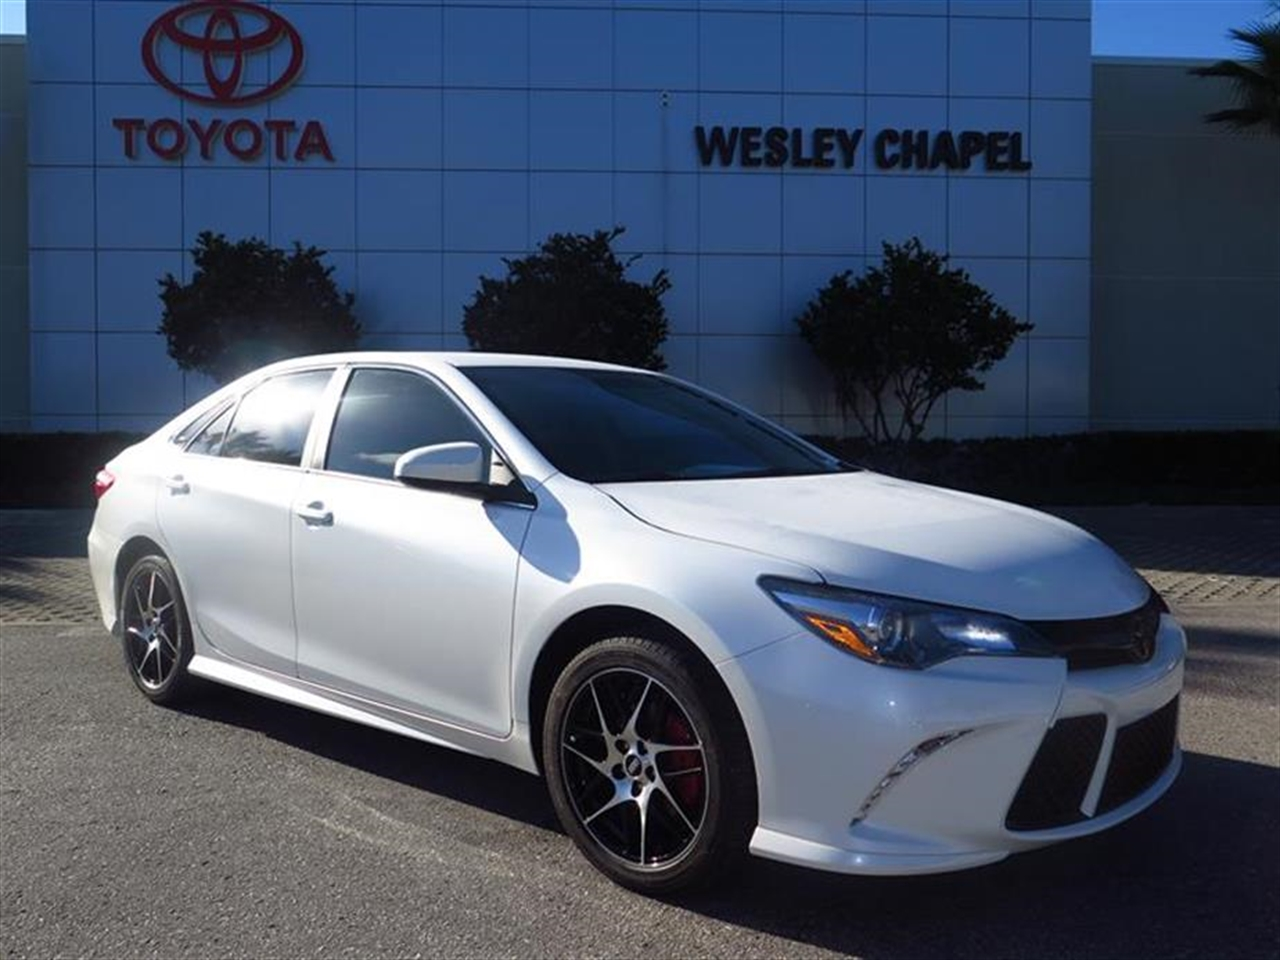 2016 TOYOTA CAMRY 4dr Sdn I4 Auto SE 0 miles 2 12V DC Power Outlets 5 Person Seating Capacity 6